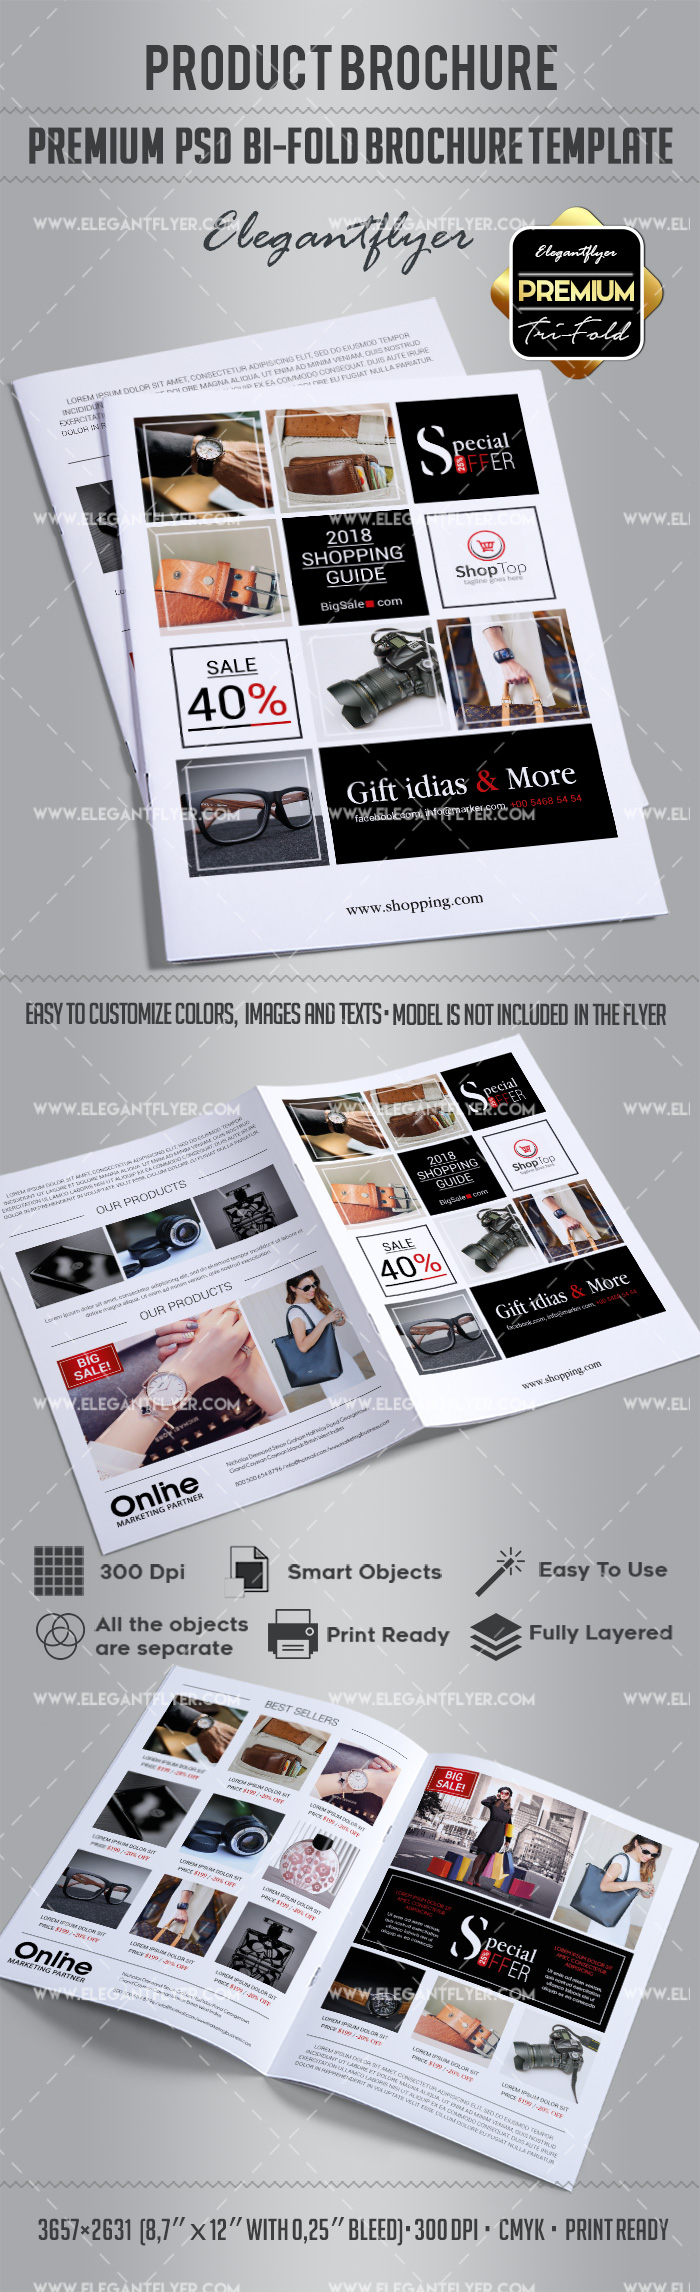 product brochure templates - product brochure bi fold template by elegantflyer